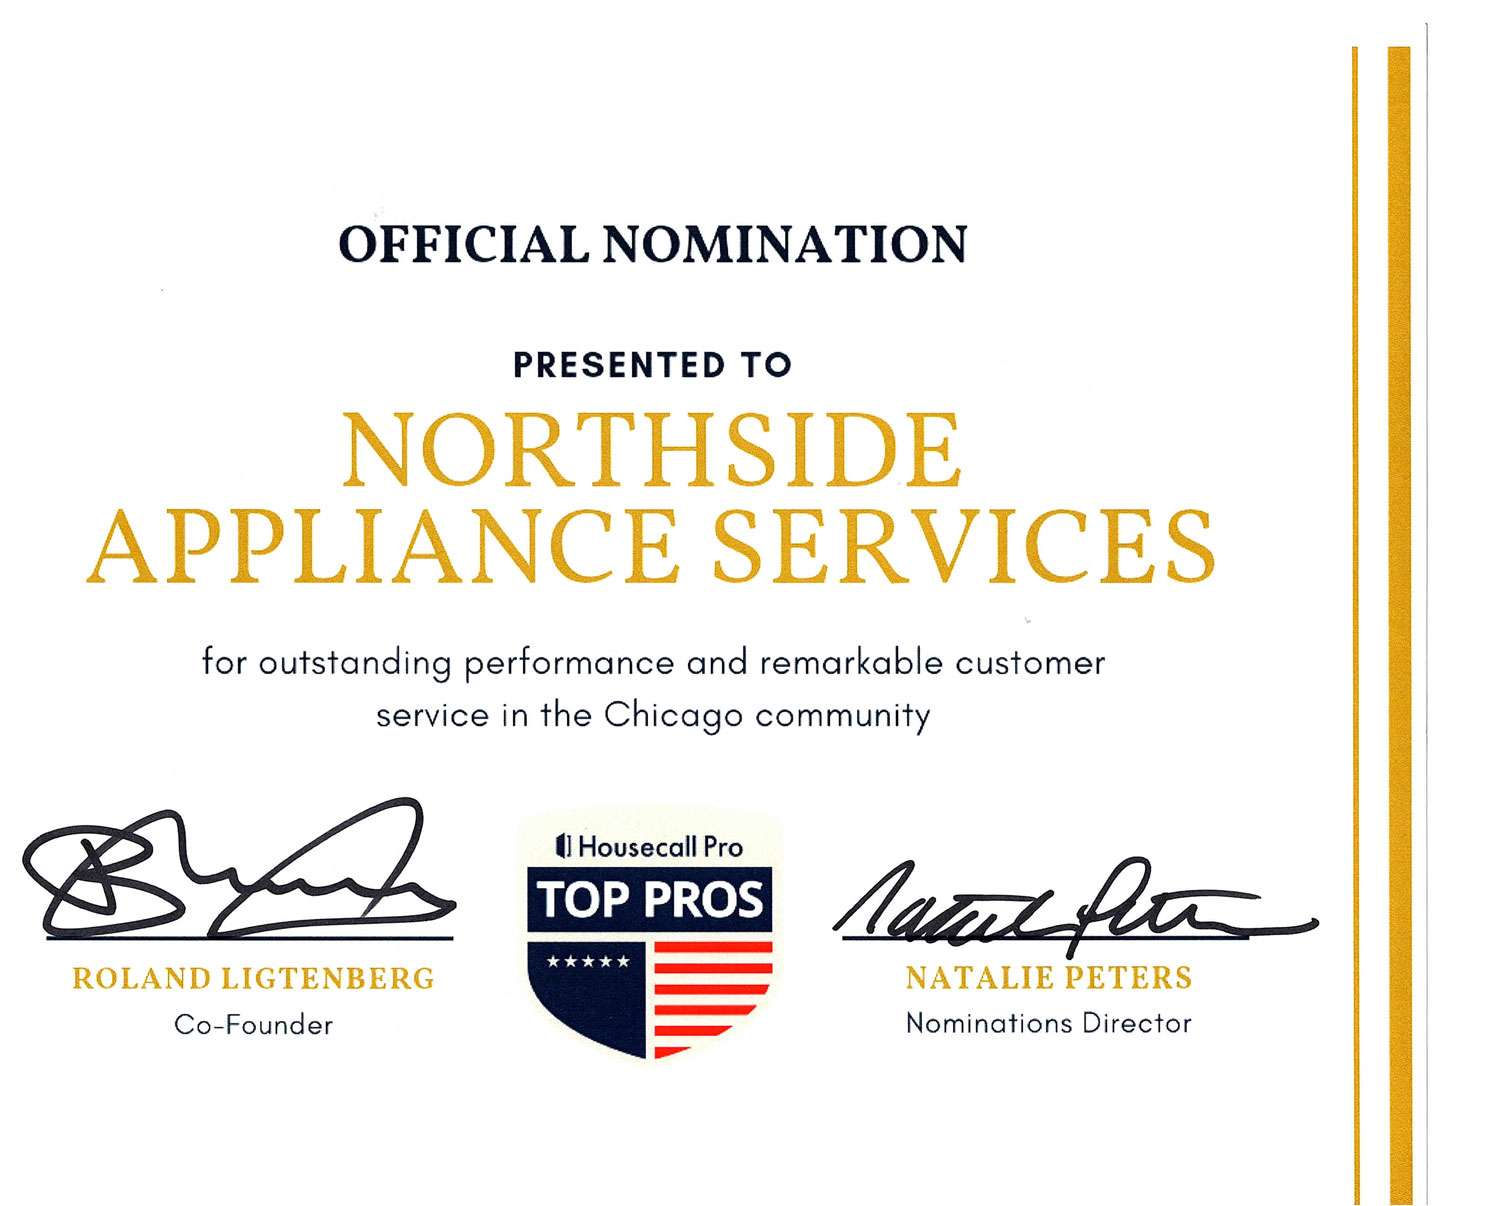 Northside Appliance Services was nominated for outstanding and remarkable customer service by Housecall Pro